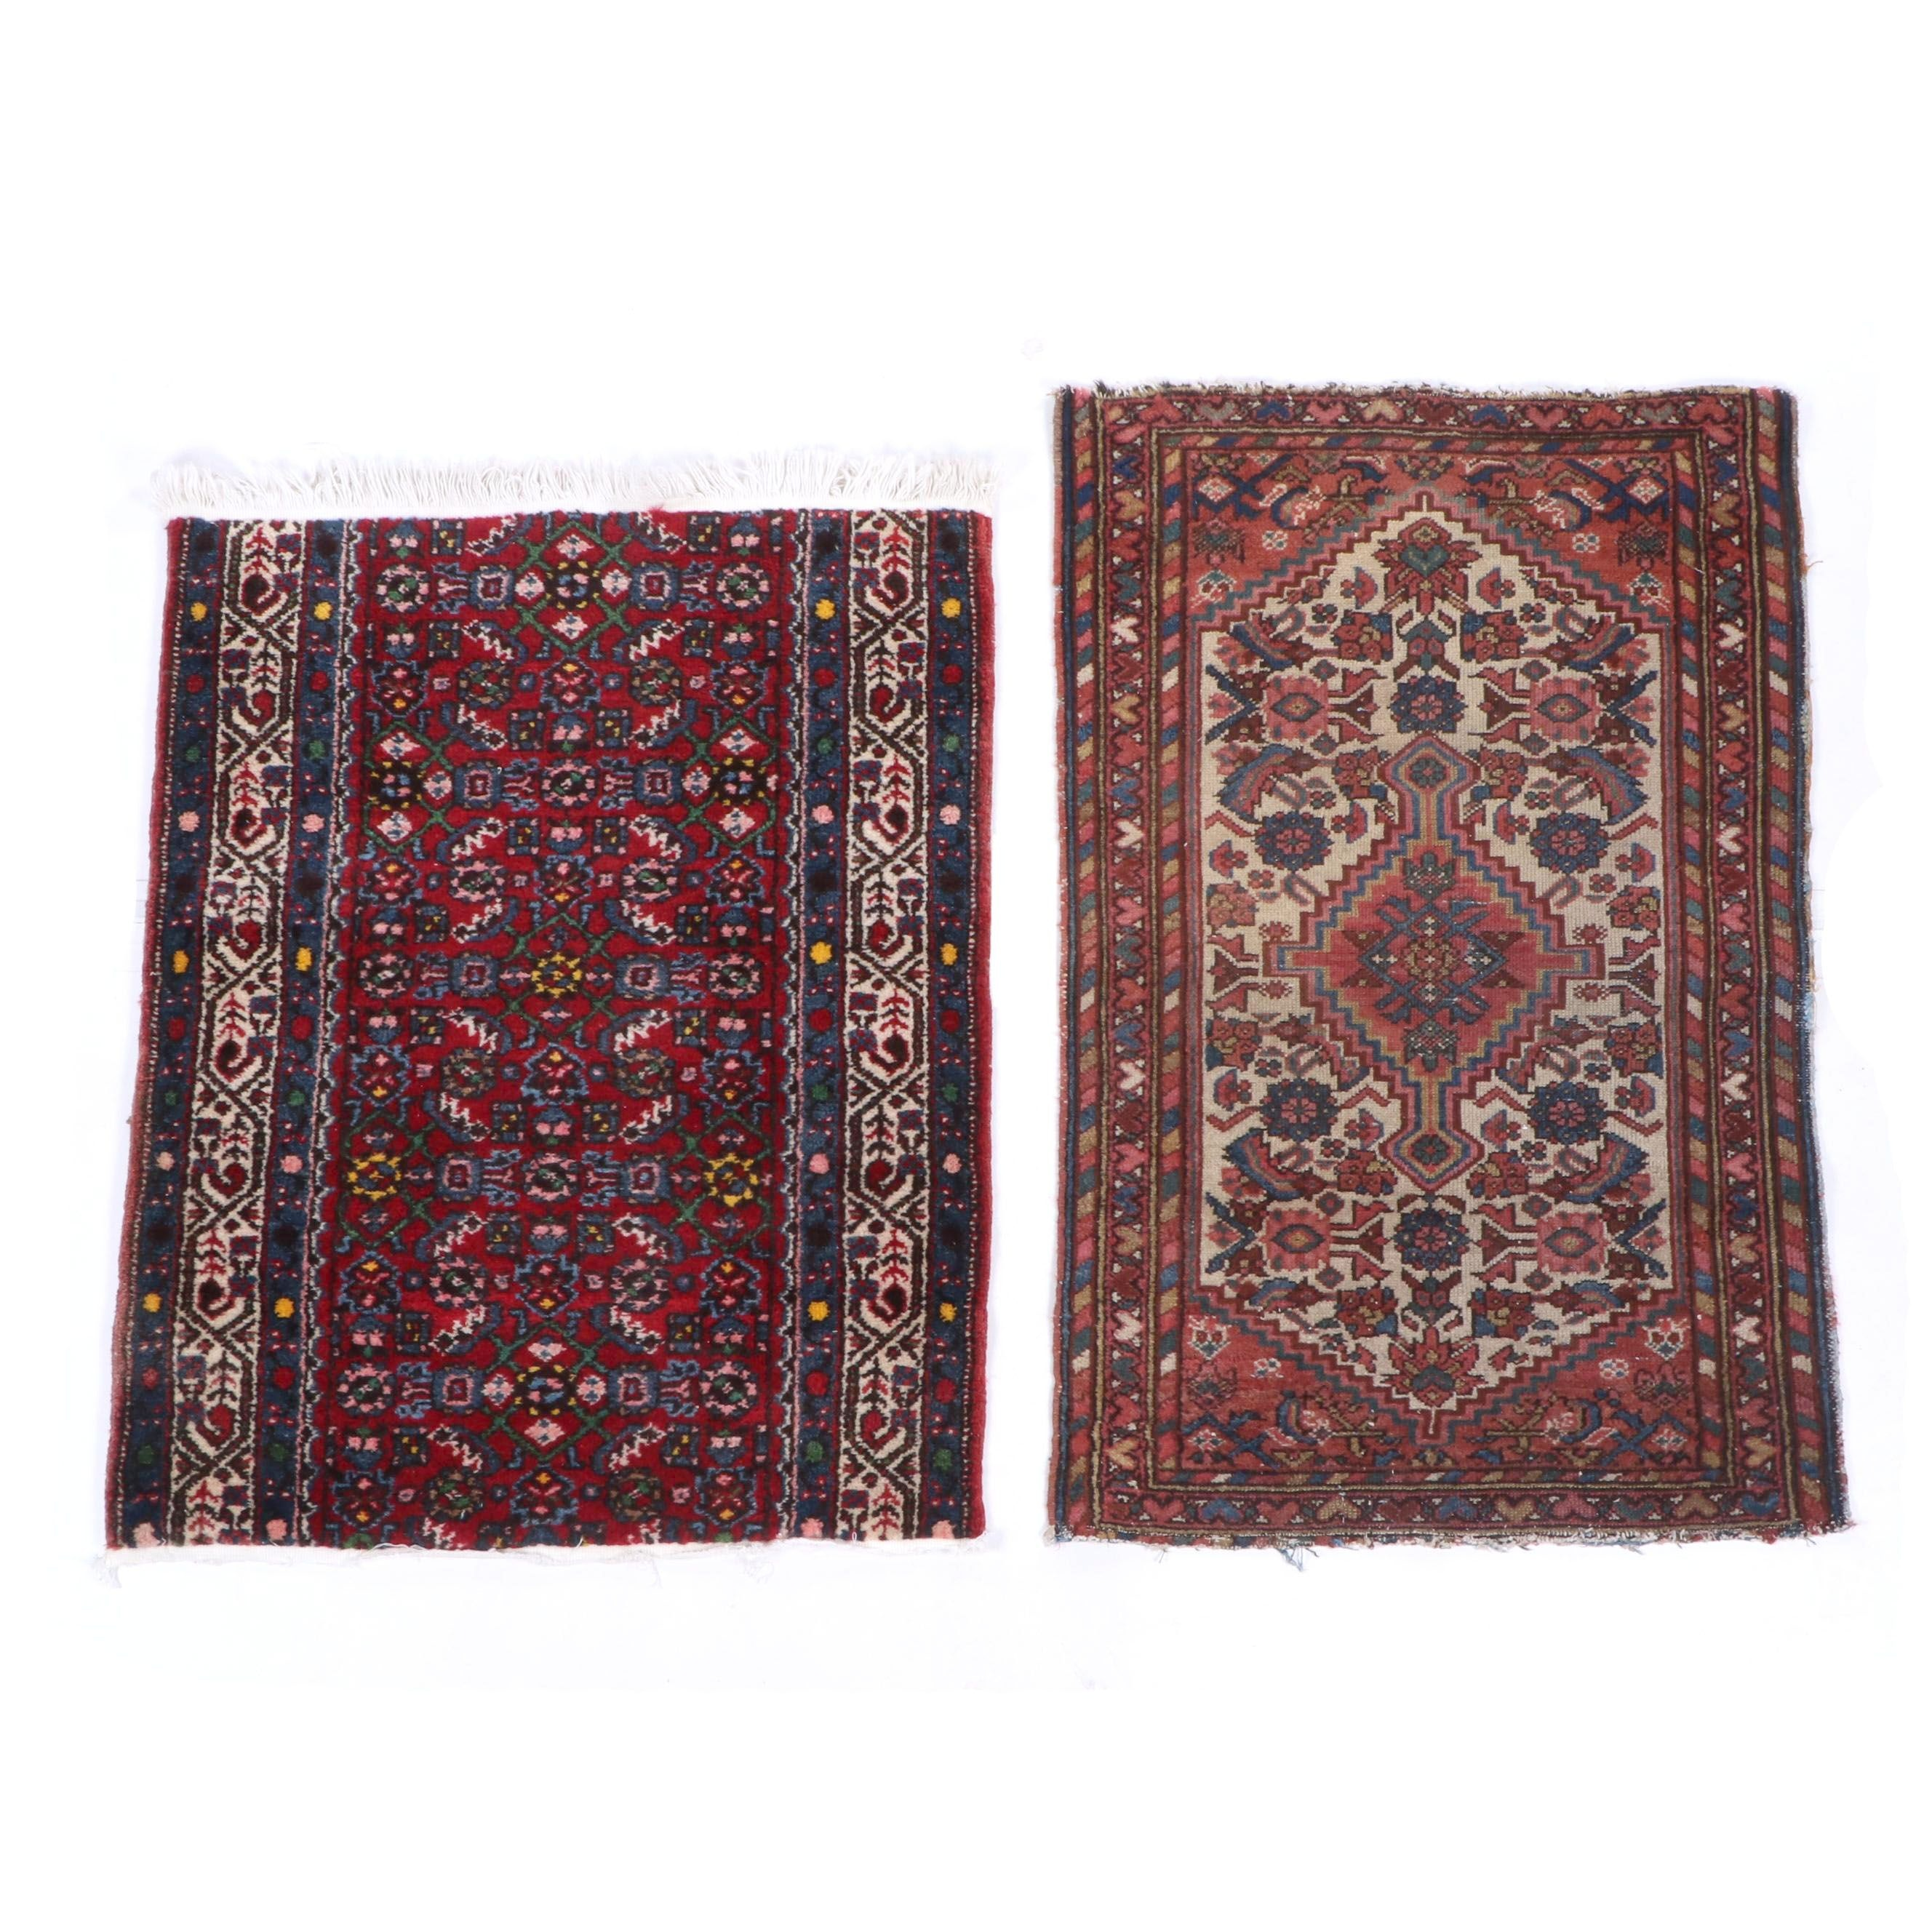 Hand-Knotted Persian Wool Rug and Remnant